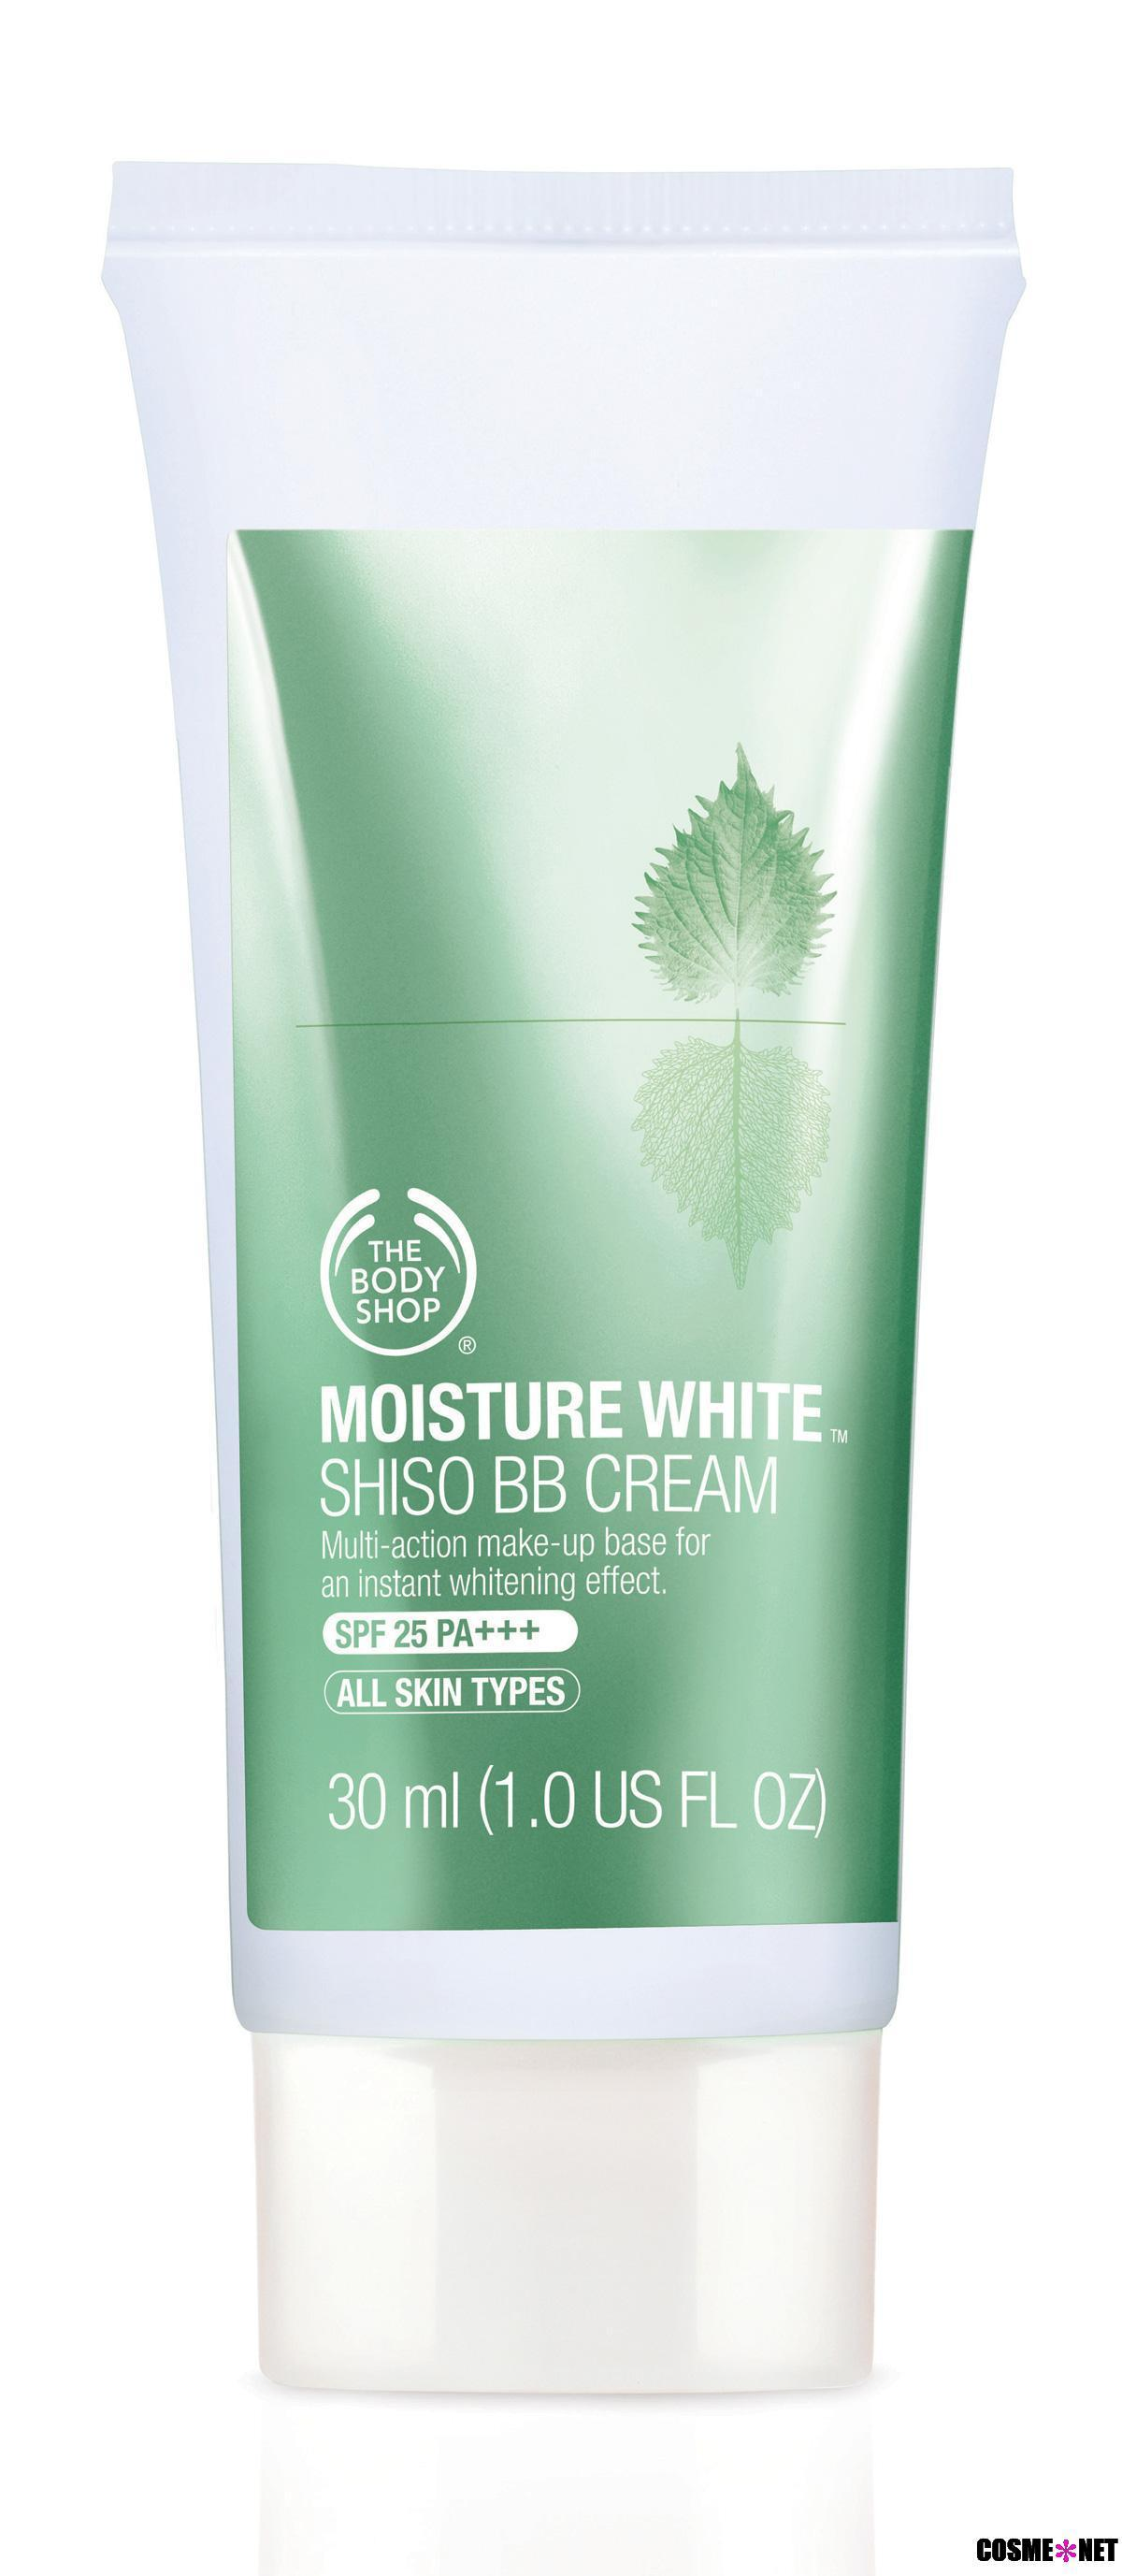 MOISTURE WHITE™SHISO BB CREAM